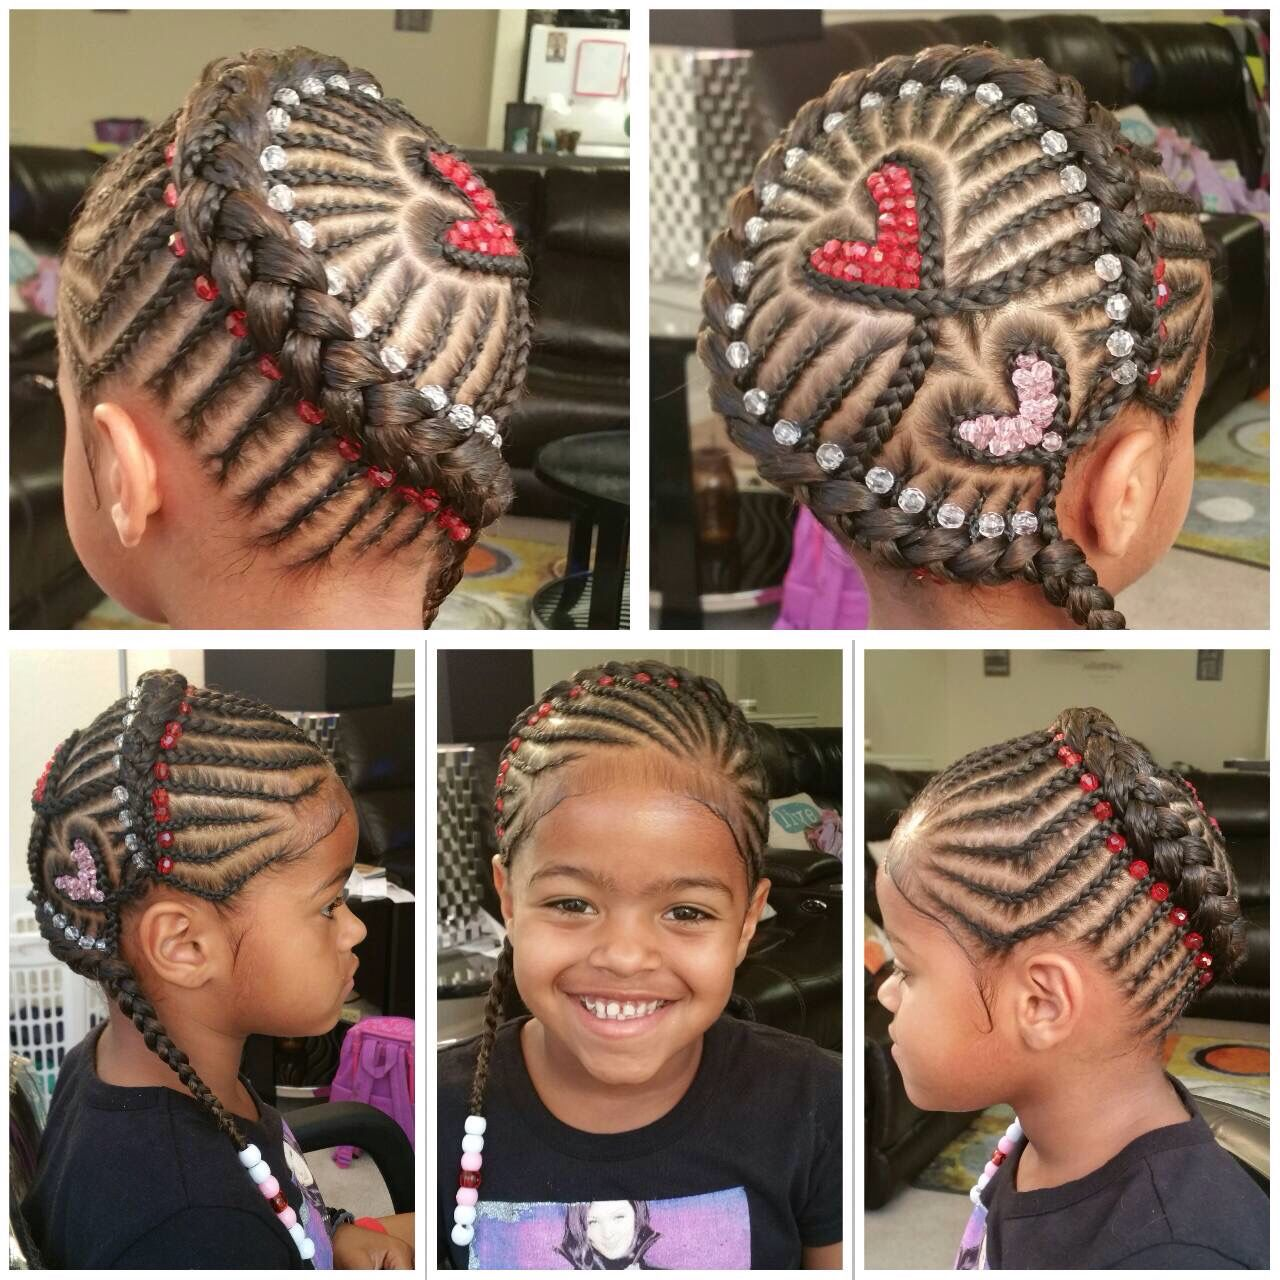 Heart Braid With Beads African Braids Hairstyles Kids Hairstyles